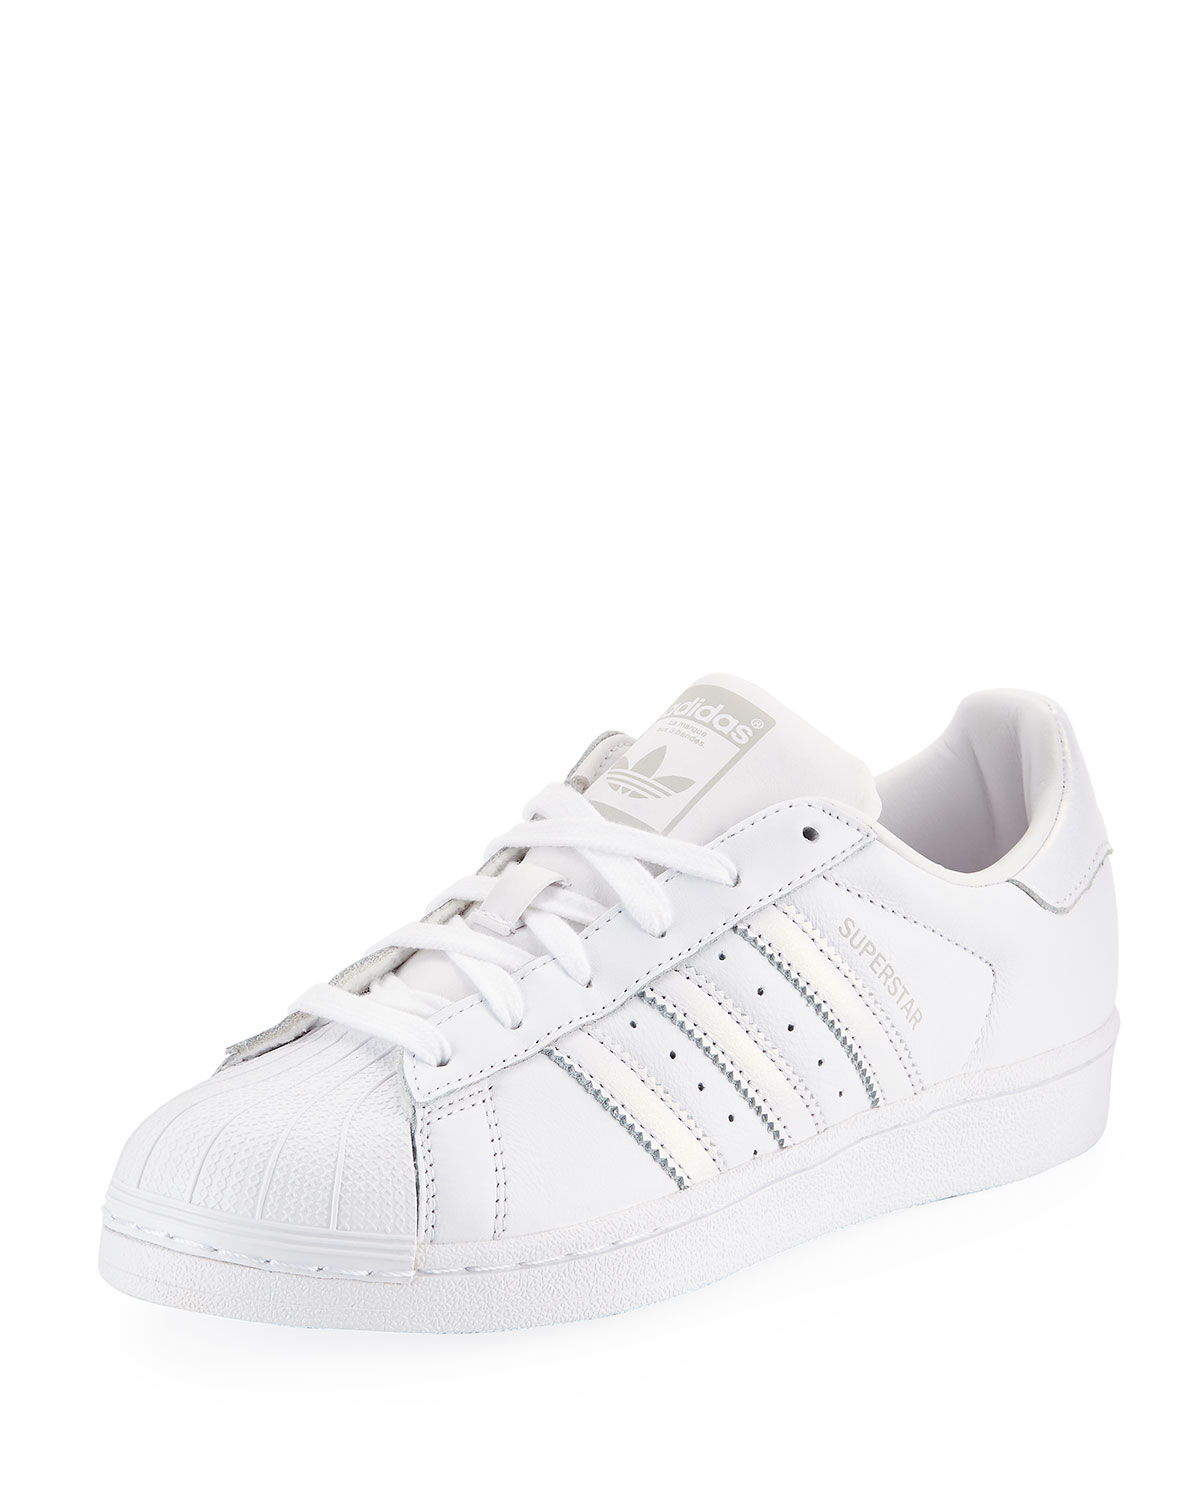 sports shoes bca89 4da2e Adidas Women s Superstar Leather Sneakers